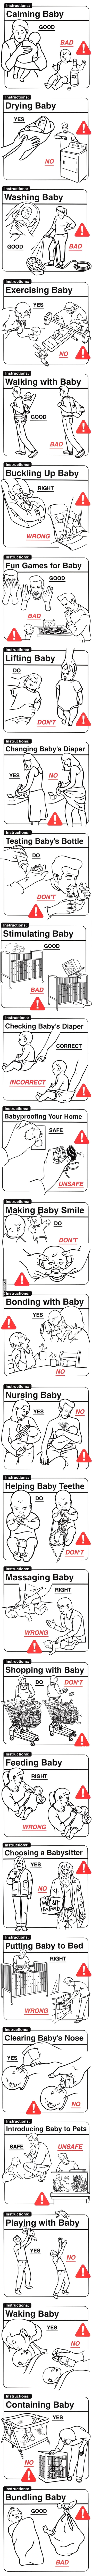 How to take care of a baby